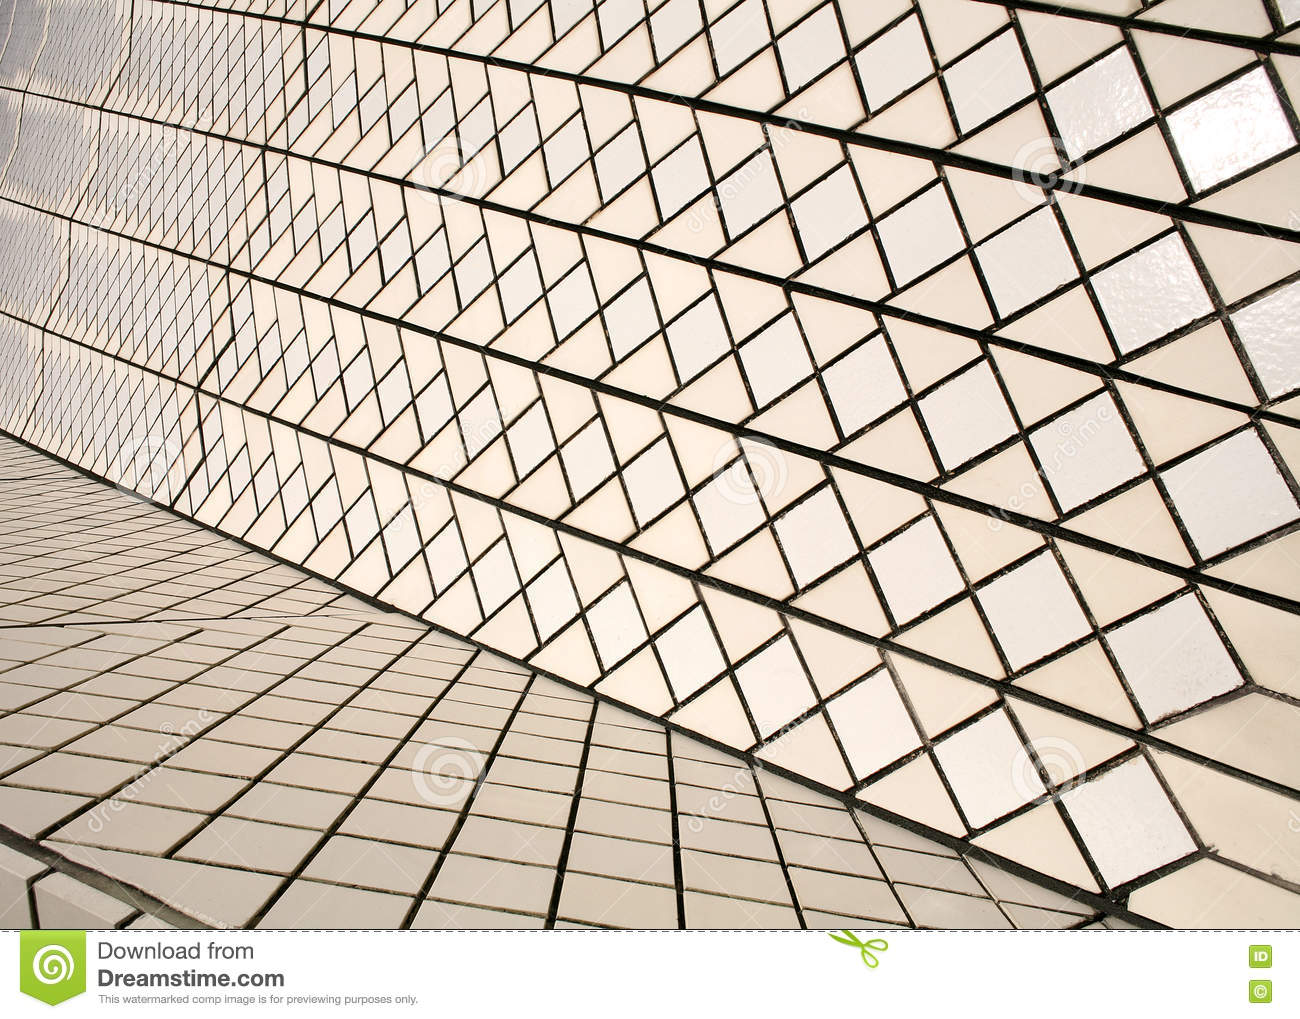 Ceramic tiles on sydney opera house editorial photo image 81489041 the cream coloured tiles on the roof of the beautiful sydney opera house doublecrazyfo Image collections